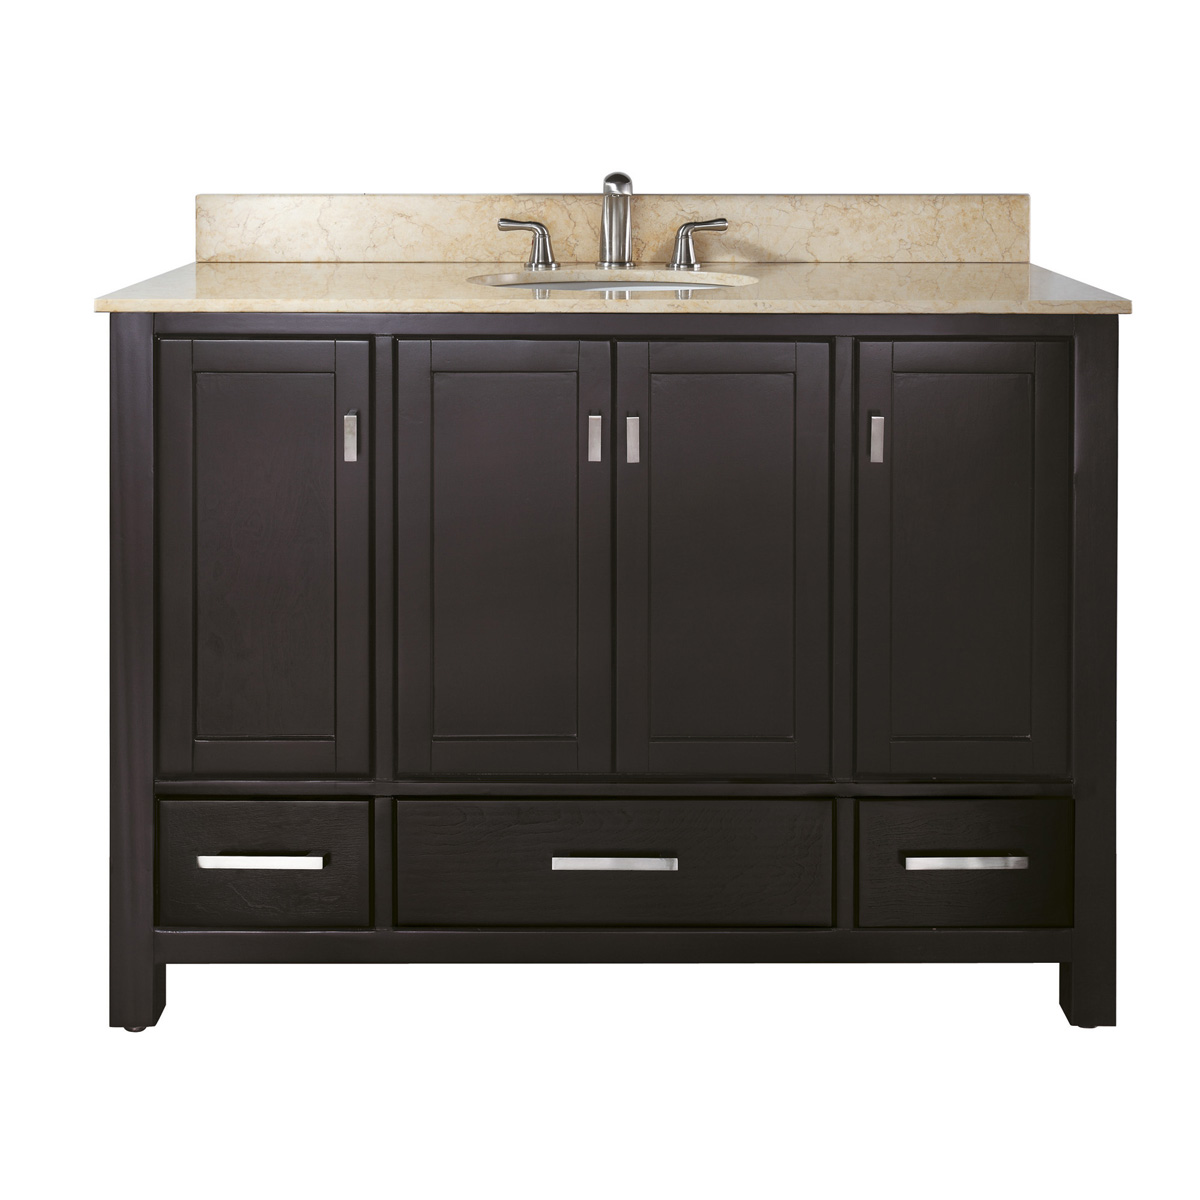 "48"" Toscana Wide Single Vanity in Espresso"